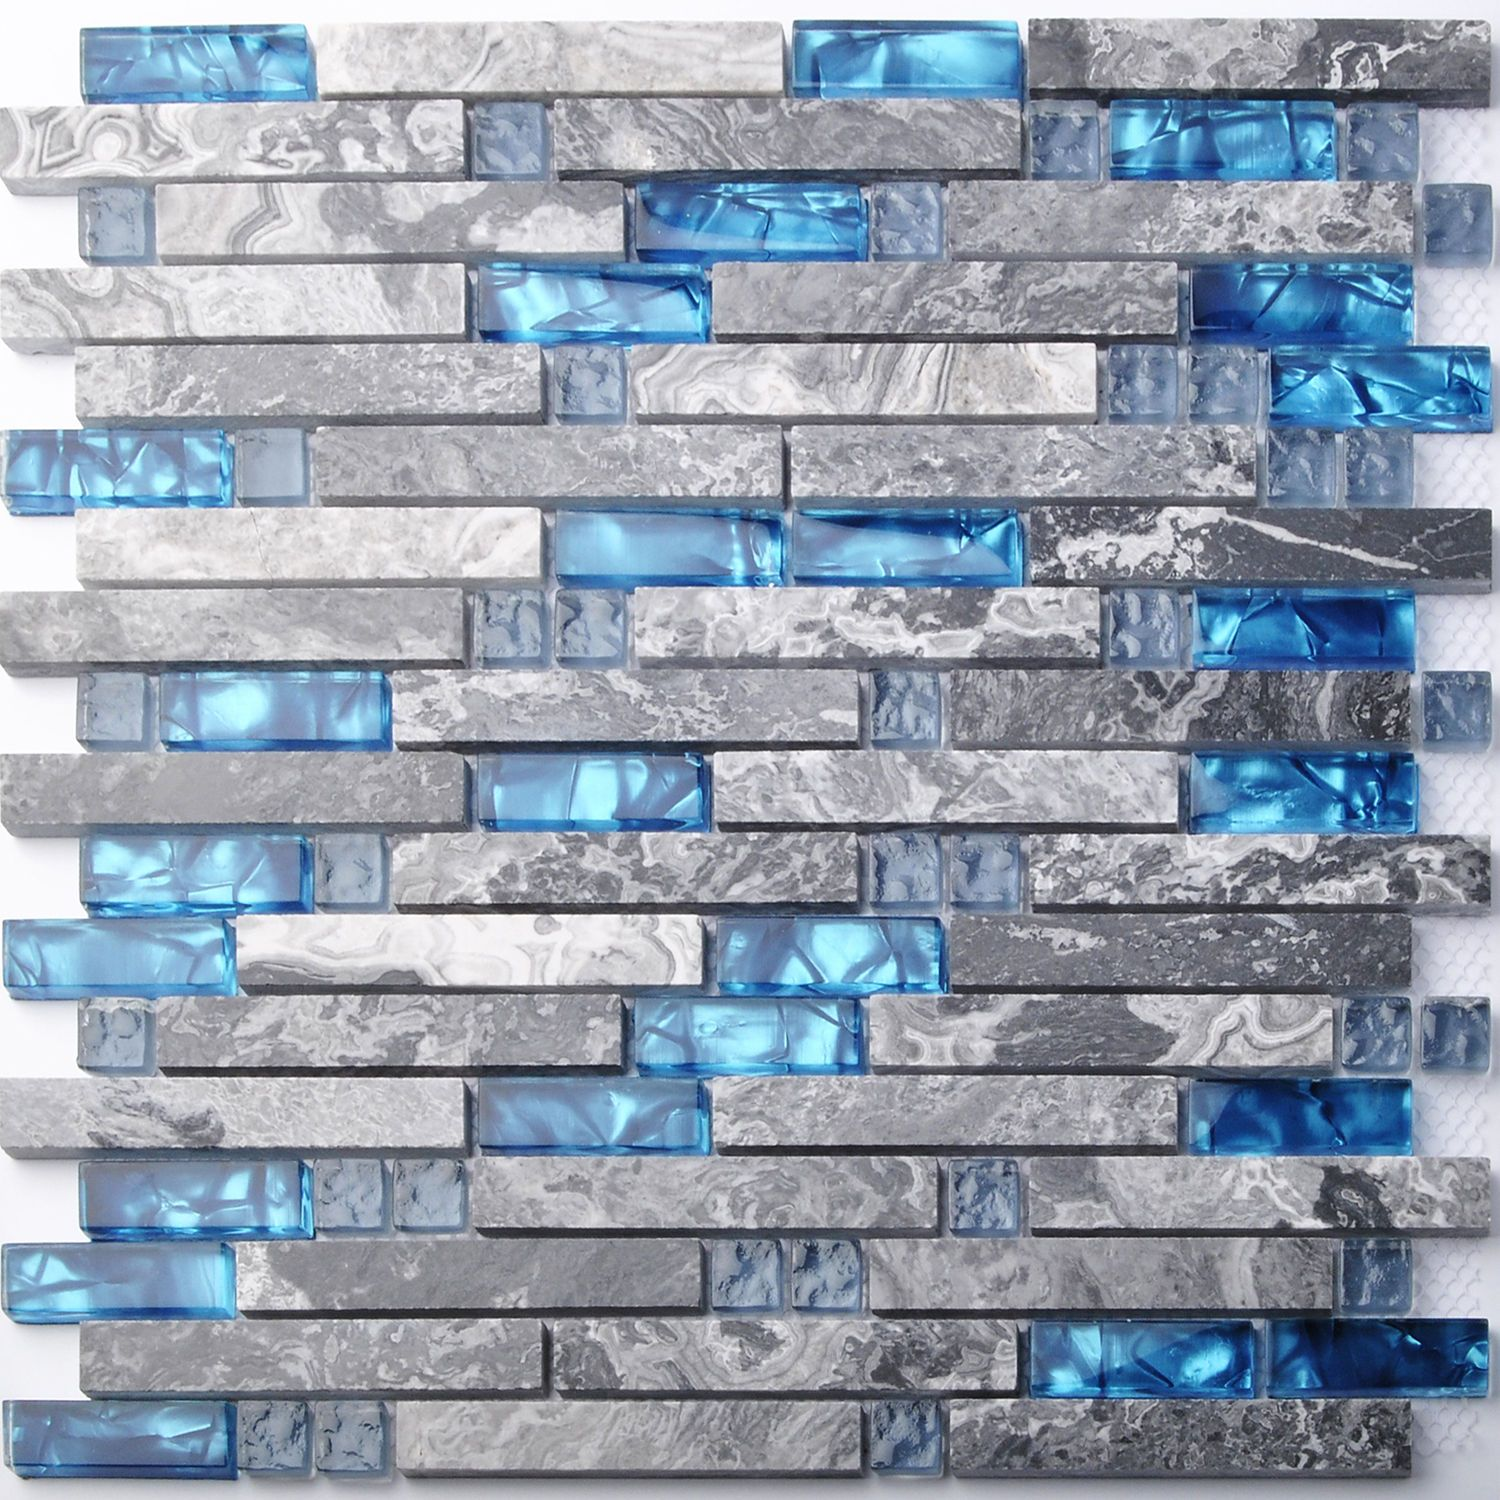 Home building glass tiles wall interlocking gray marble blue sea home building glass tiles wall interlocking gray marble blue sea backsplash tile dailygadgetfo Choice Image